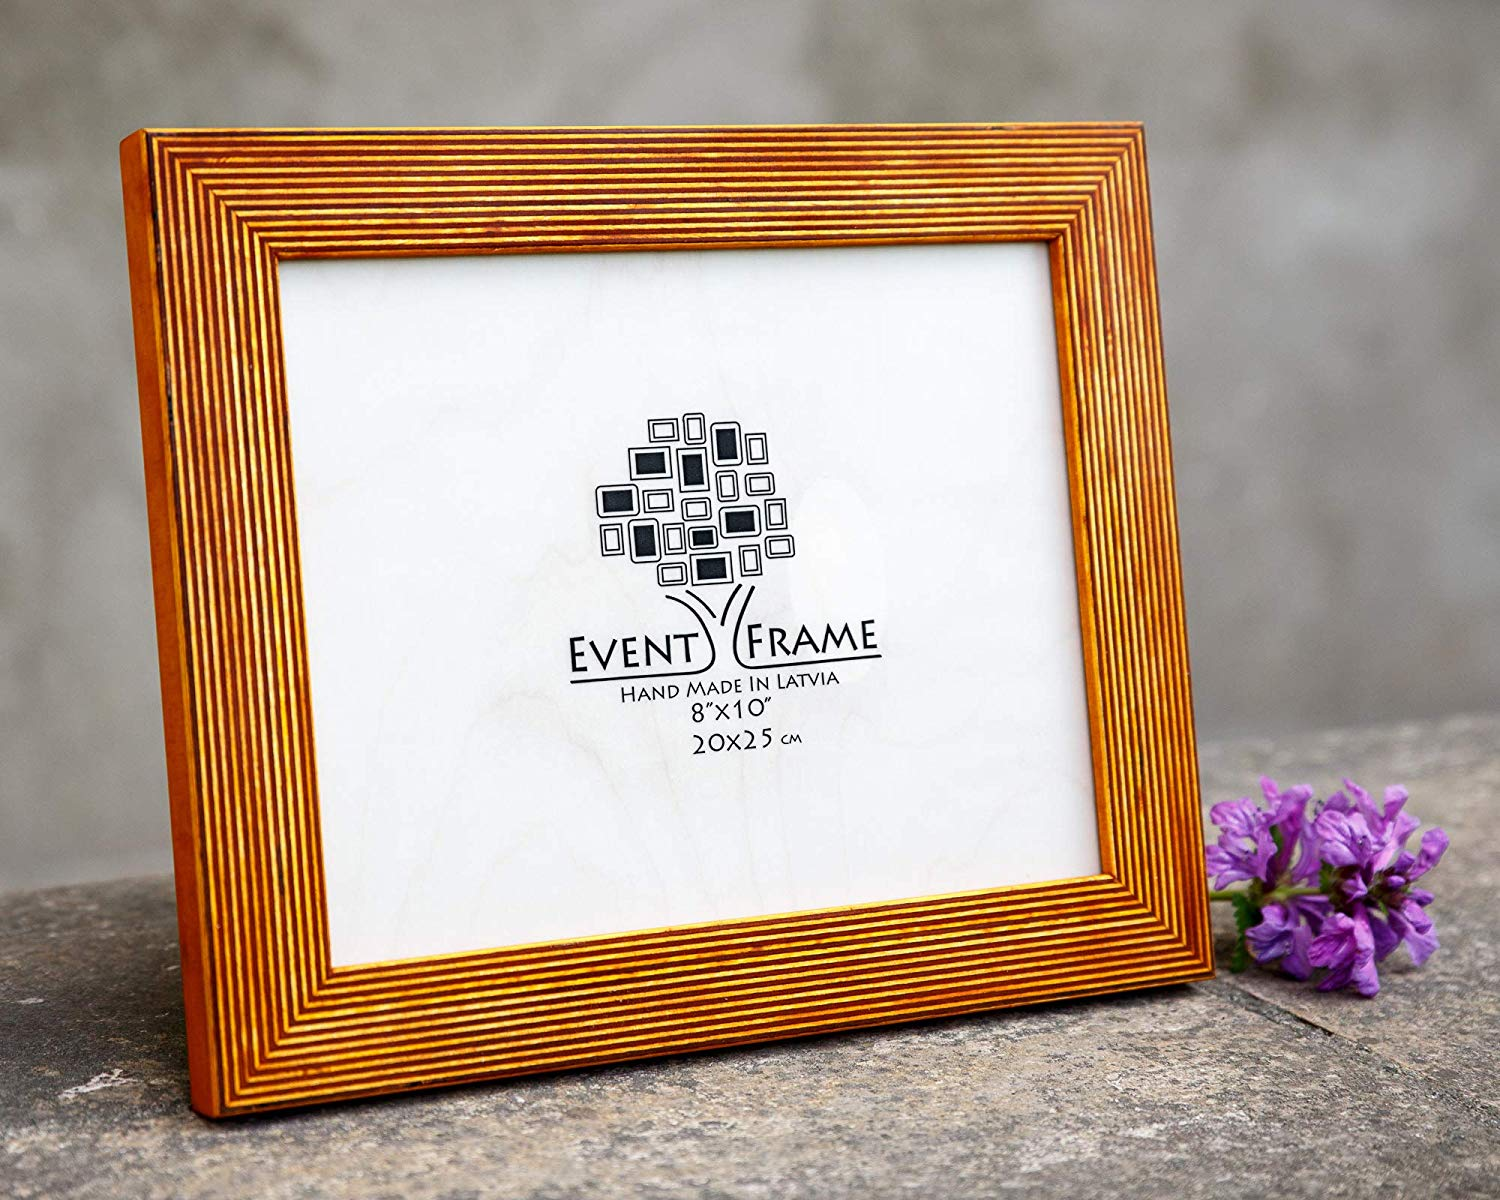 Yellow Picture Frame, Wooden Photo Frame, Rustic Frame SIZES 4x4 4x6 5x5 5x7 5.5x8.5 6x6 6x8 7x7 7x9 8x8 8x10 10x10 8x12 8.5x11 11x14